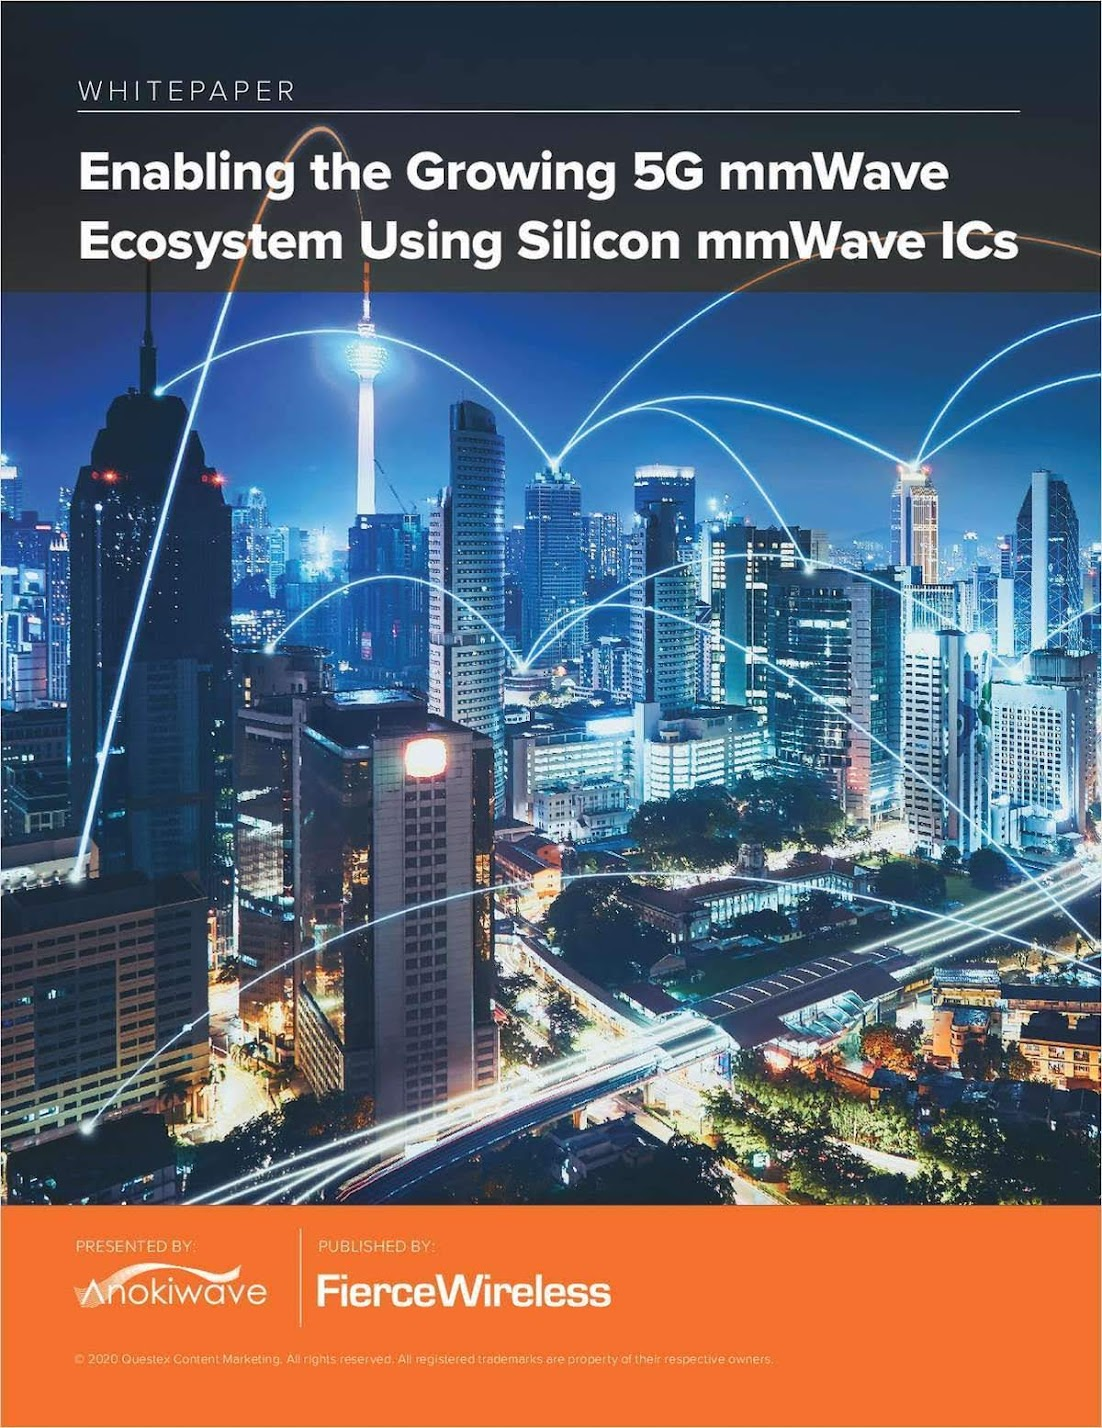 Enabling the Growing 5G mmWave Ecosystem Using Silicon mmWave Integrated Chipsets